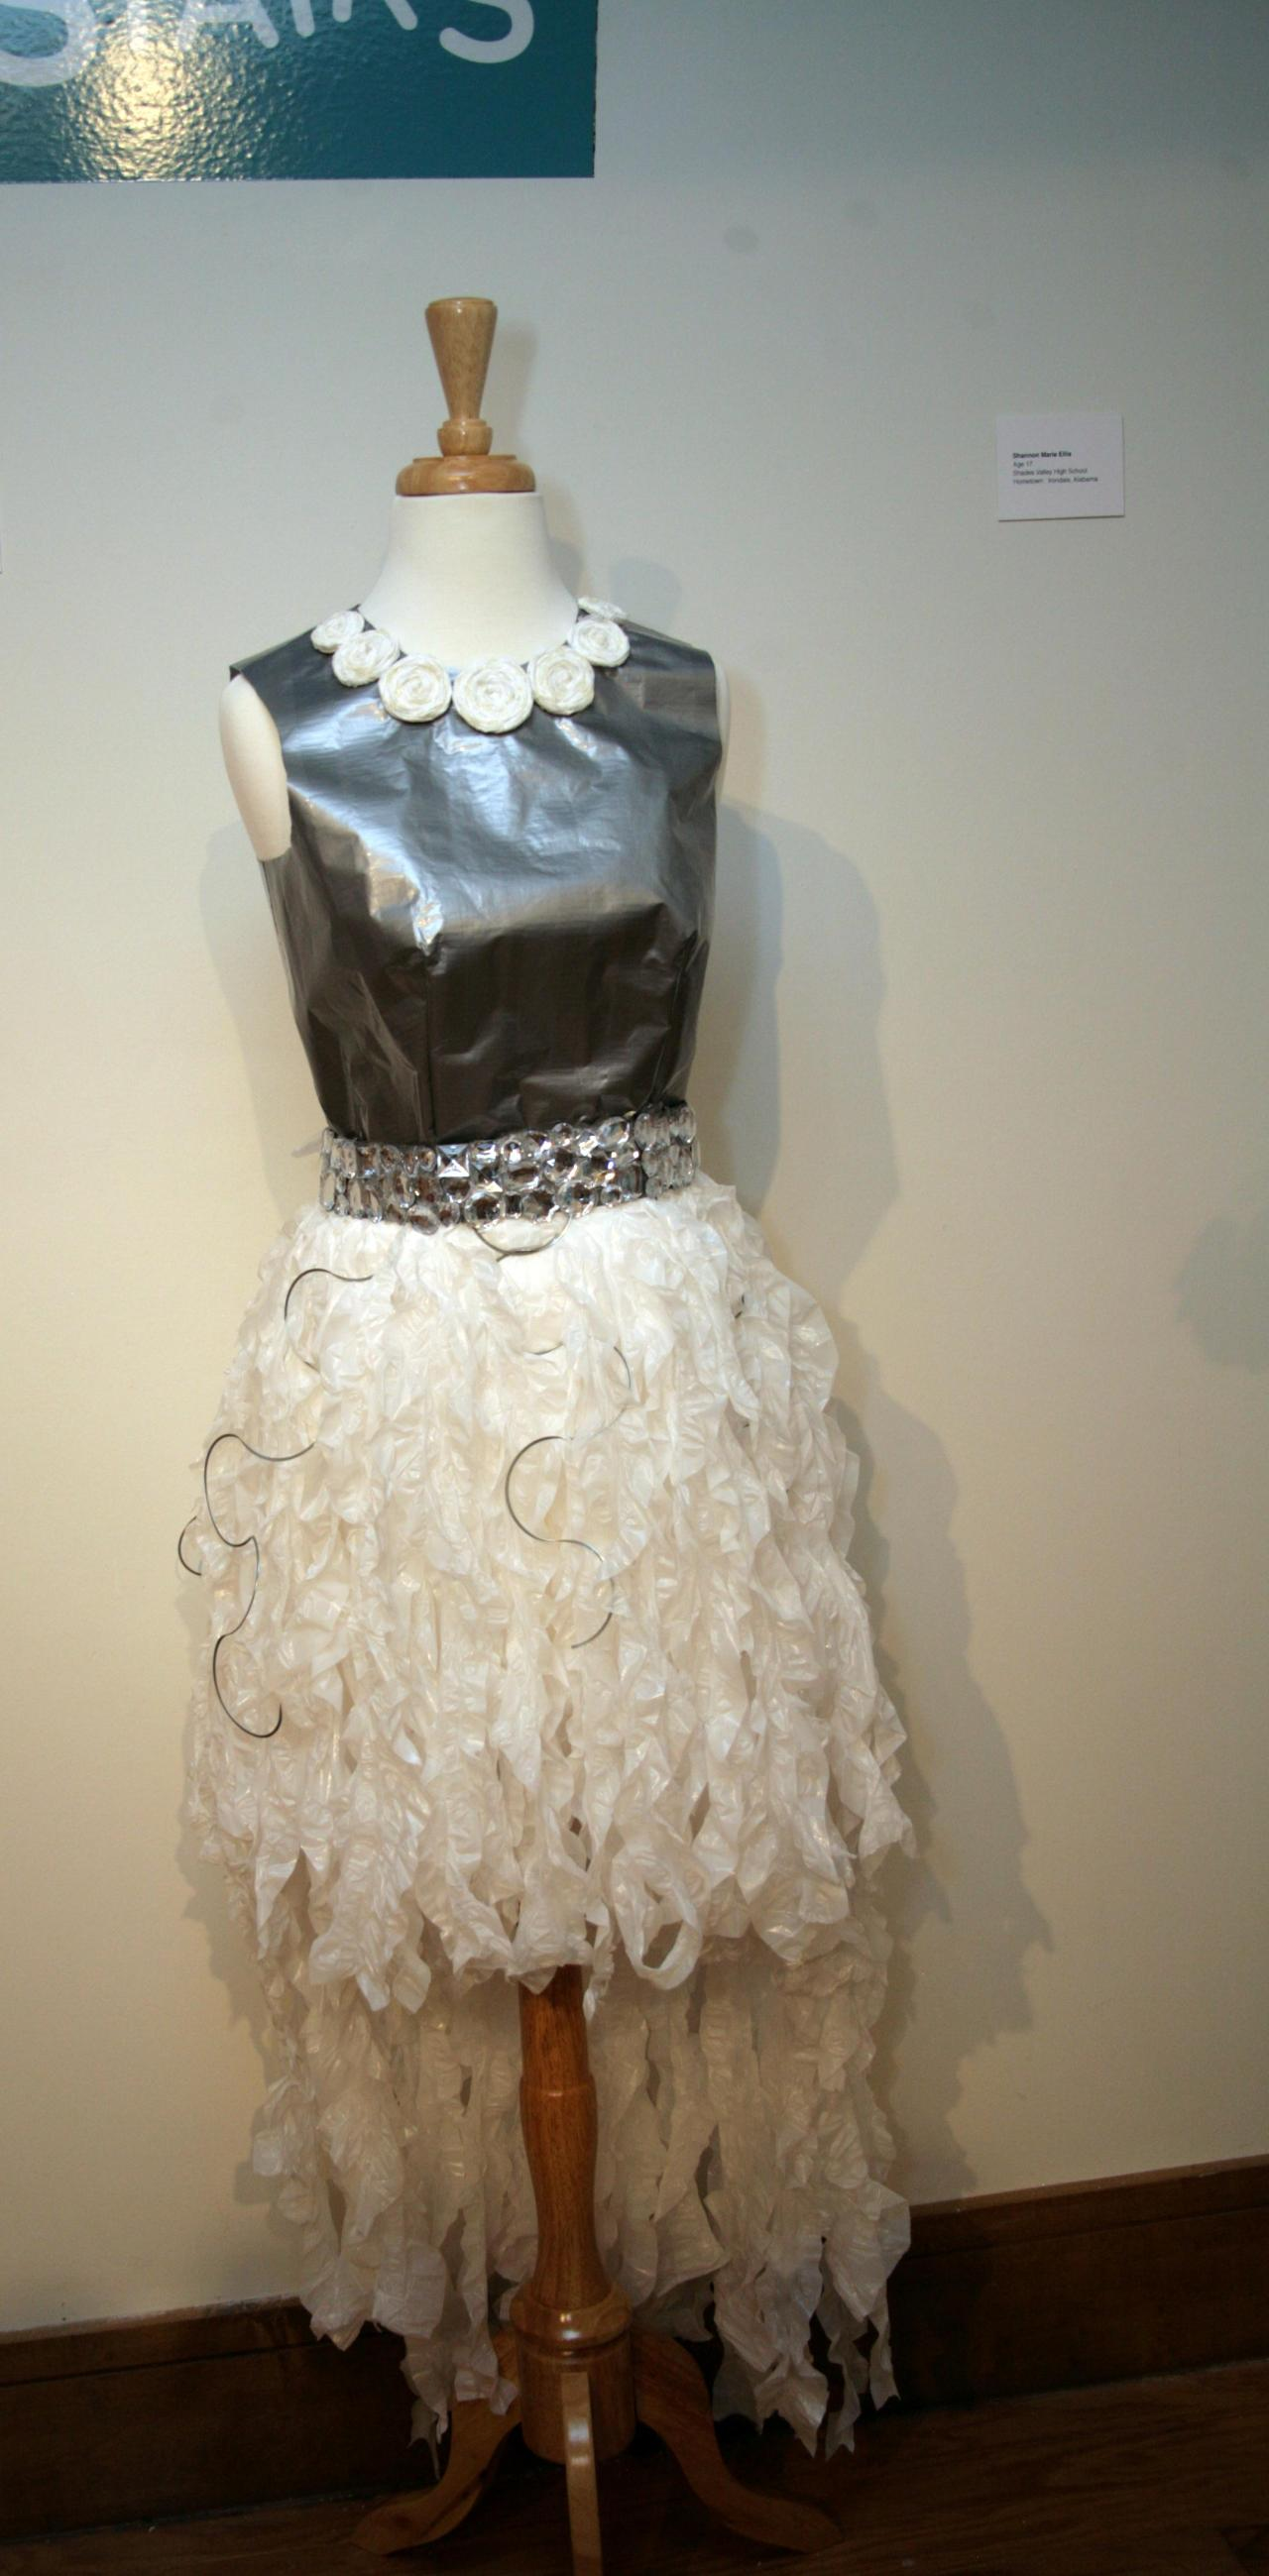 This high-low dress masterpiece was designed by Olivia Kampworth (age 17, attends Vestavia Hills High School).